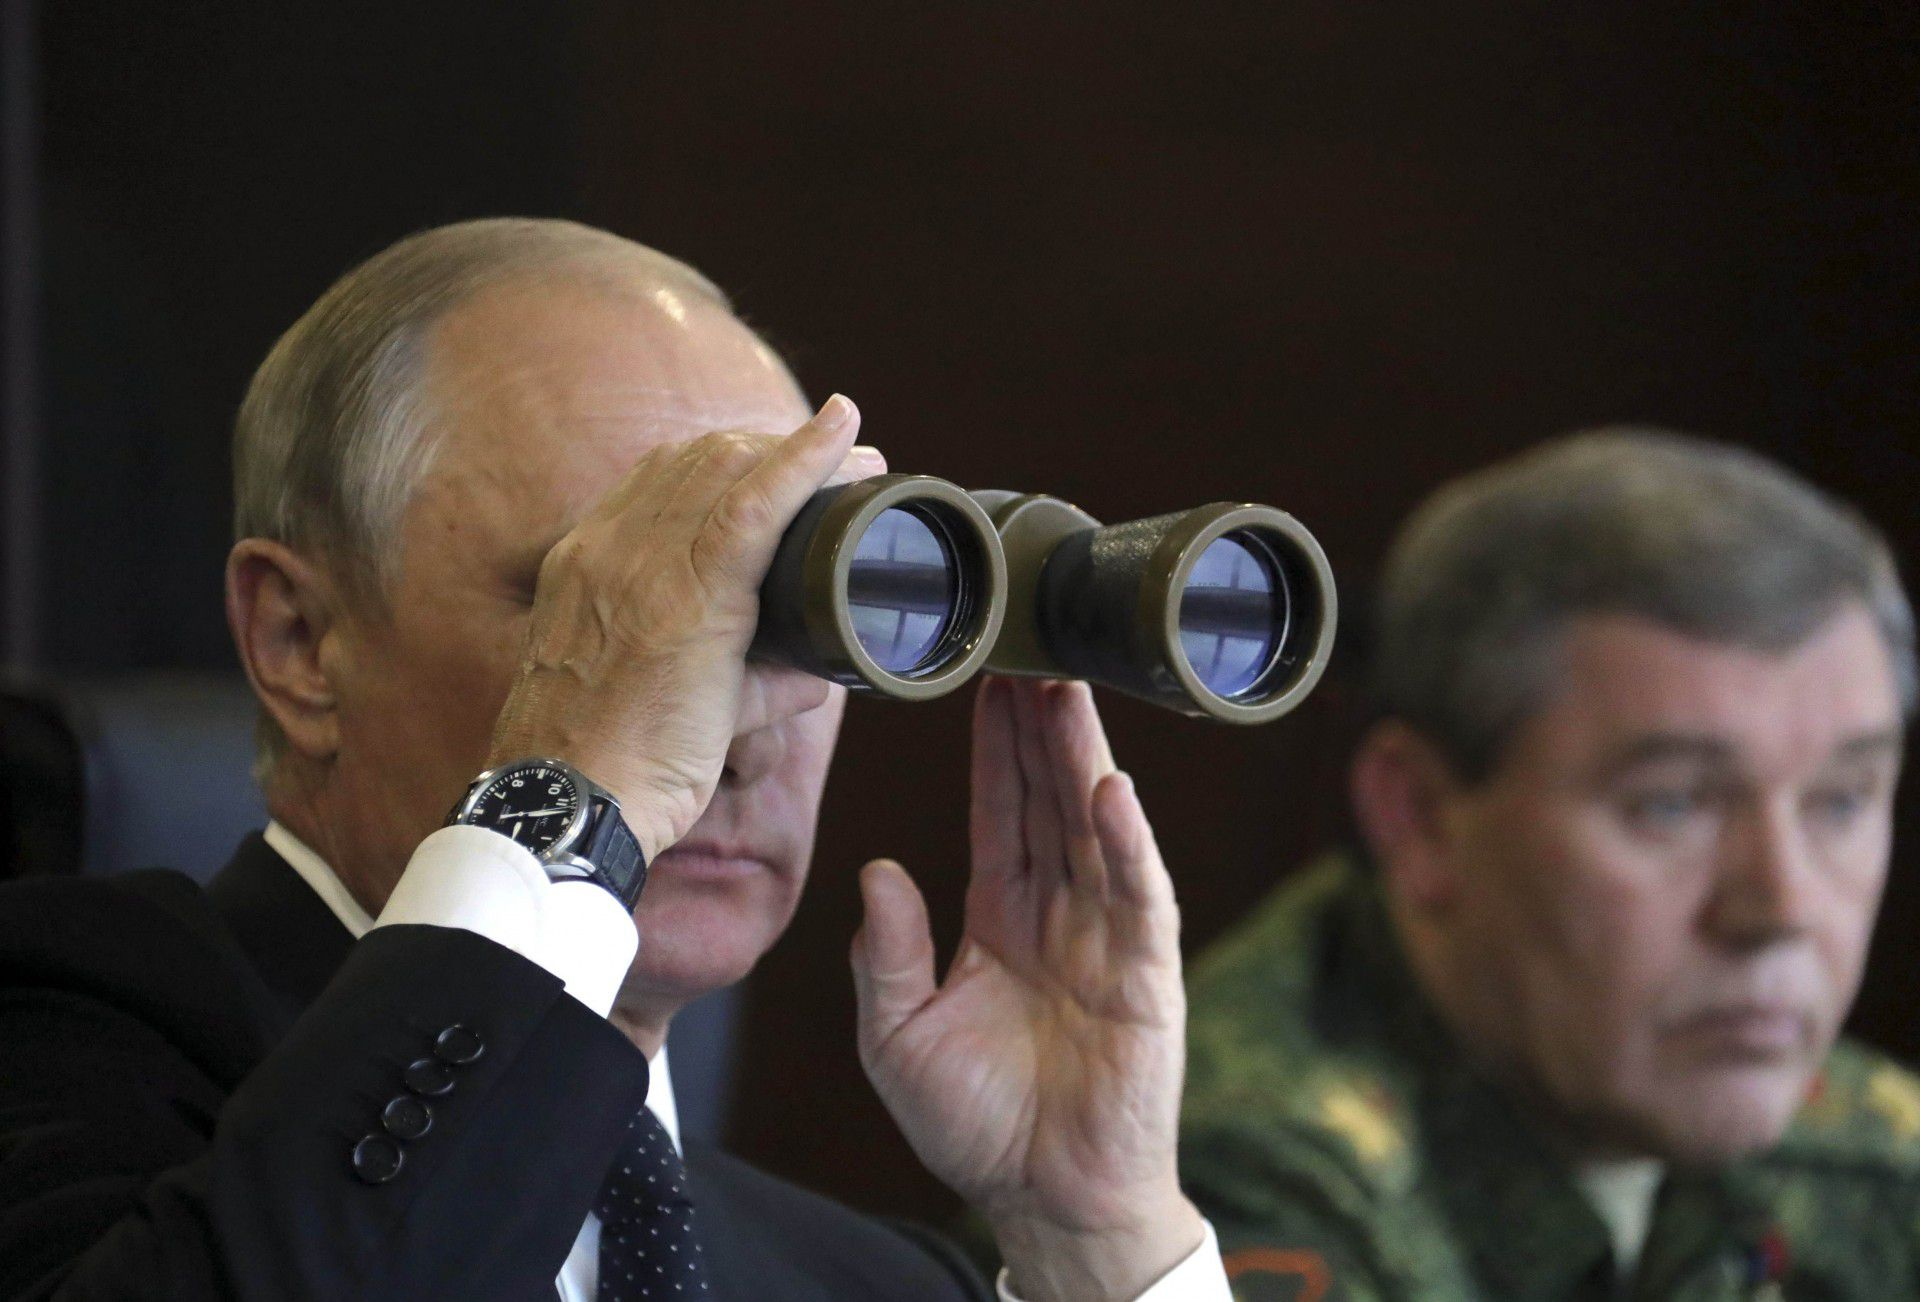 Russian President Vladimir Putin uses a pair of binoculars while watching the Zapad-2017 war games, held by Russian and Belarussian servicemen, with Chief of the General Staff of Russian Armed Forces Valery Gerasimov seen nearby, at a military training ground in the Leningrad region, Russia September 18, 2017. Sputnik/Mikhail Klimentyev/Kremlin via REUTERS ATTENTION EDITORS - THIS IMAGE WAS PROVIDED BY A THIRD PARTY.